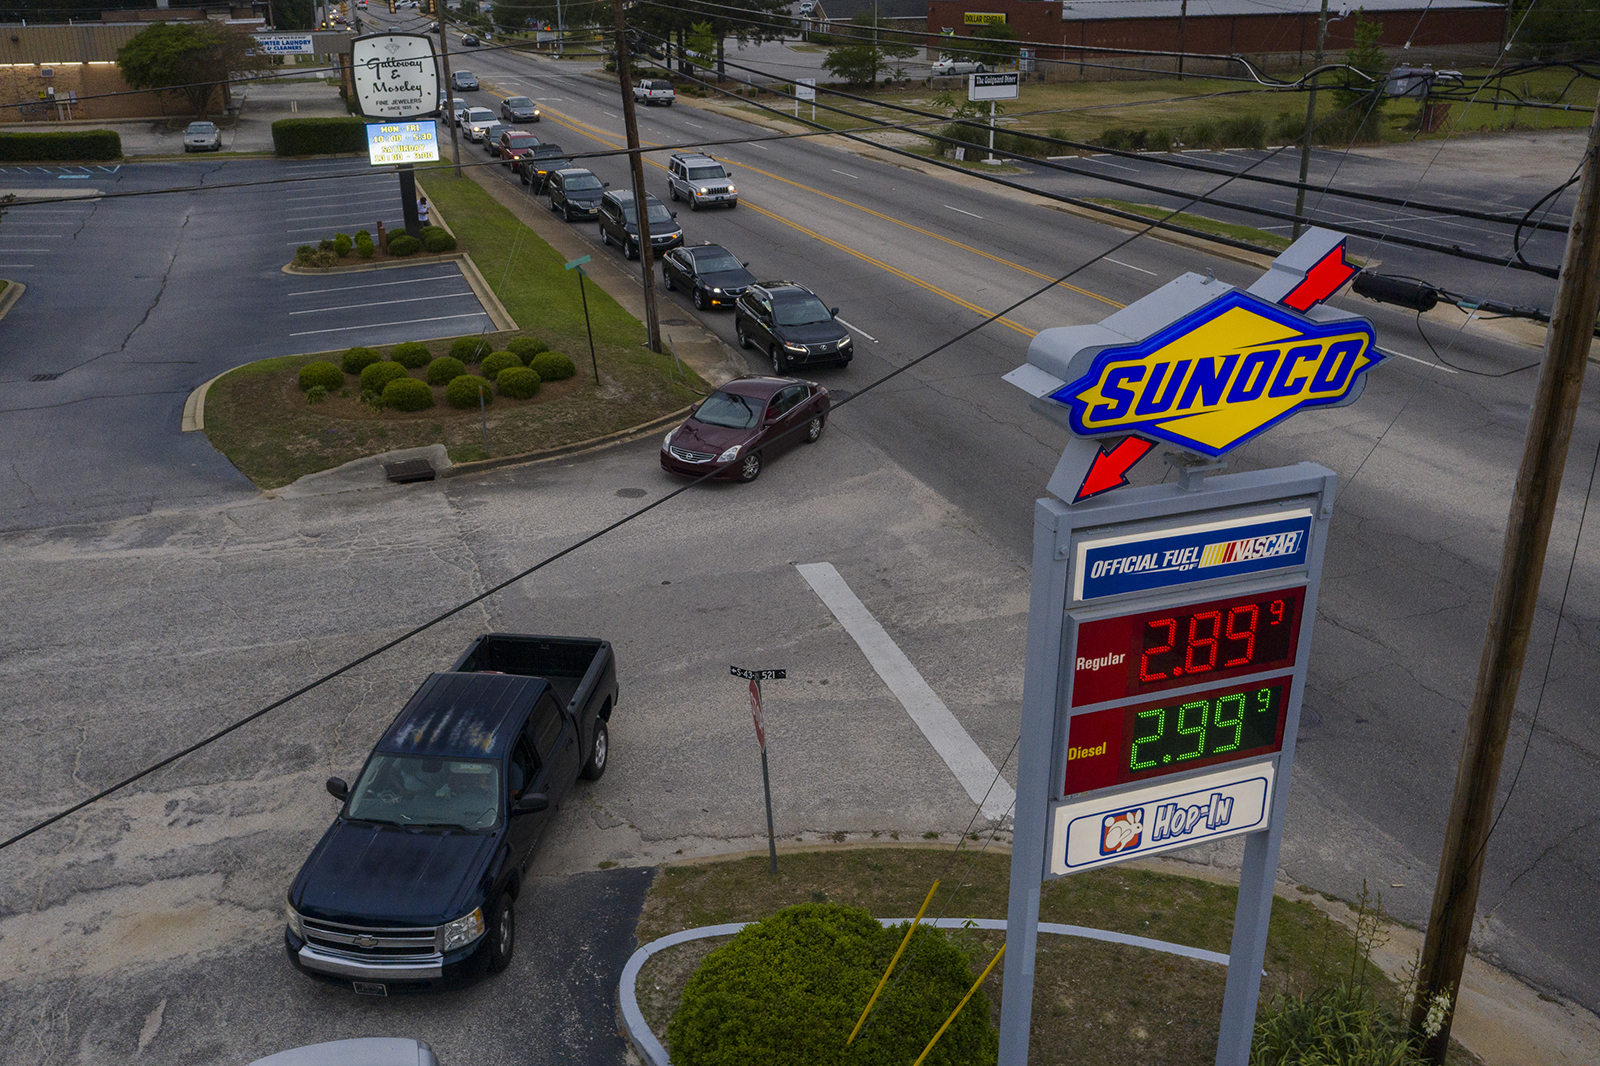 Vehicles line up to get fuel at a Sunoco gas station in Sumter, South Carolina on Tuesday, May 11.